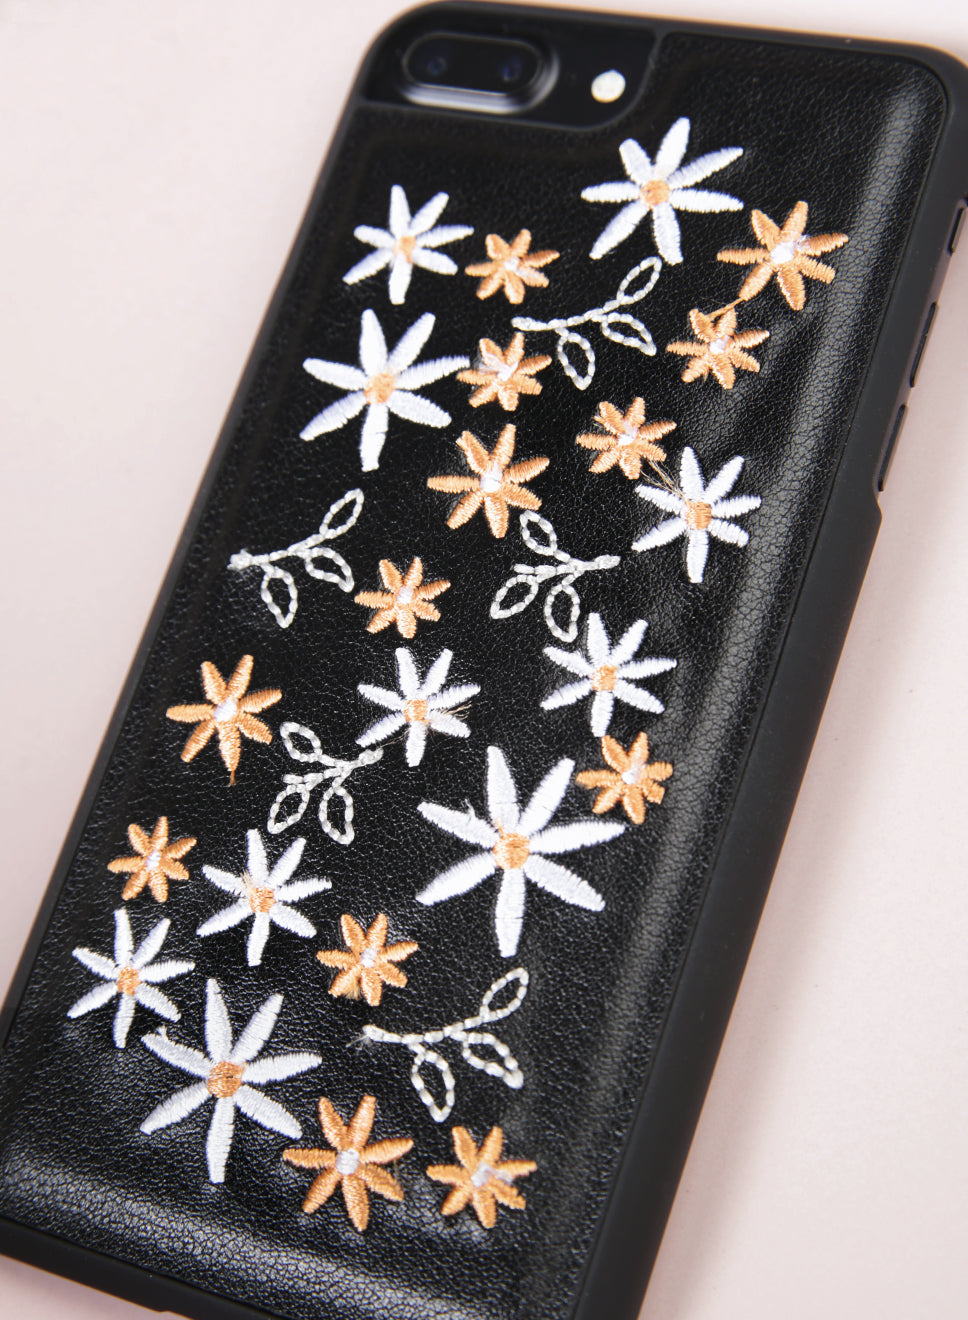 DAISIES Embroidery iPhone Case (Black) at $ 16.90 only sold at And Well Dressed Online Fashion Store Singapore